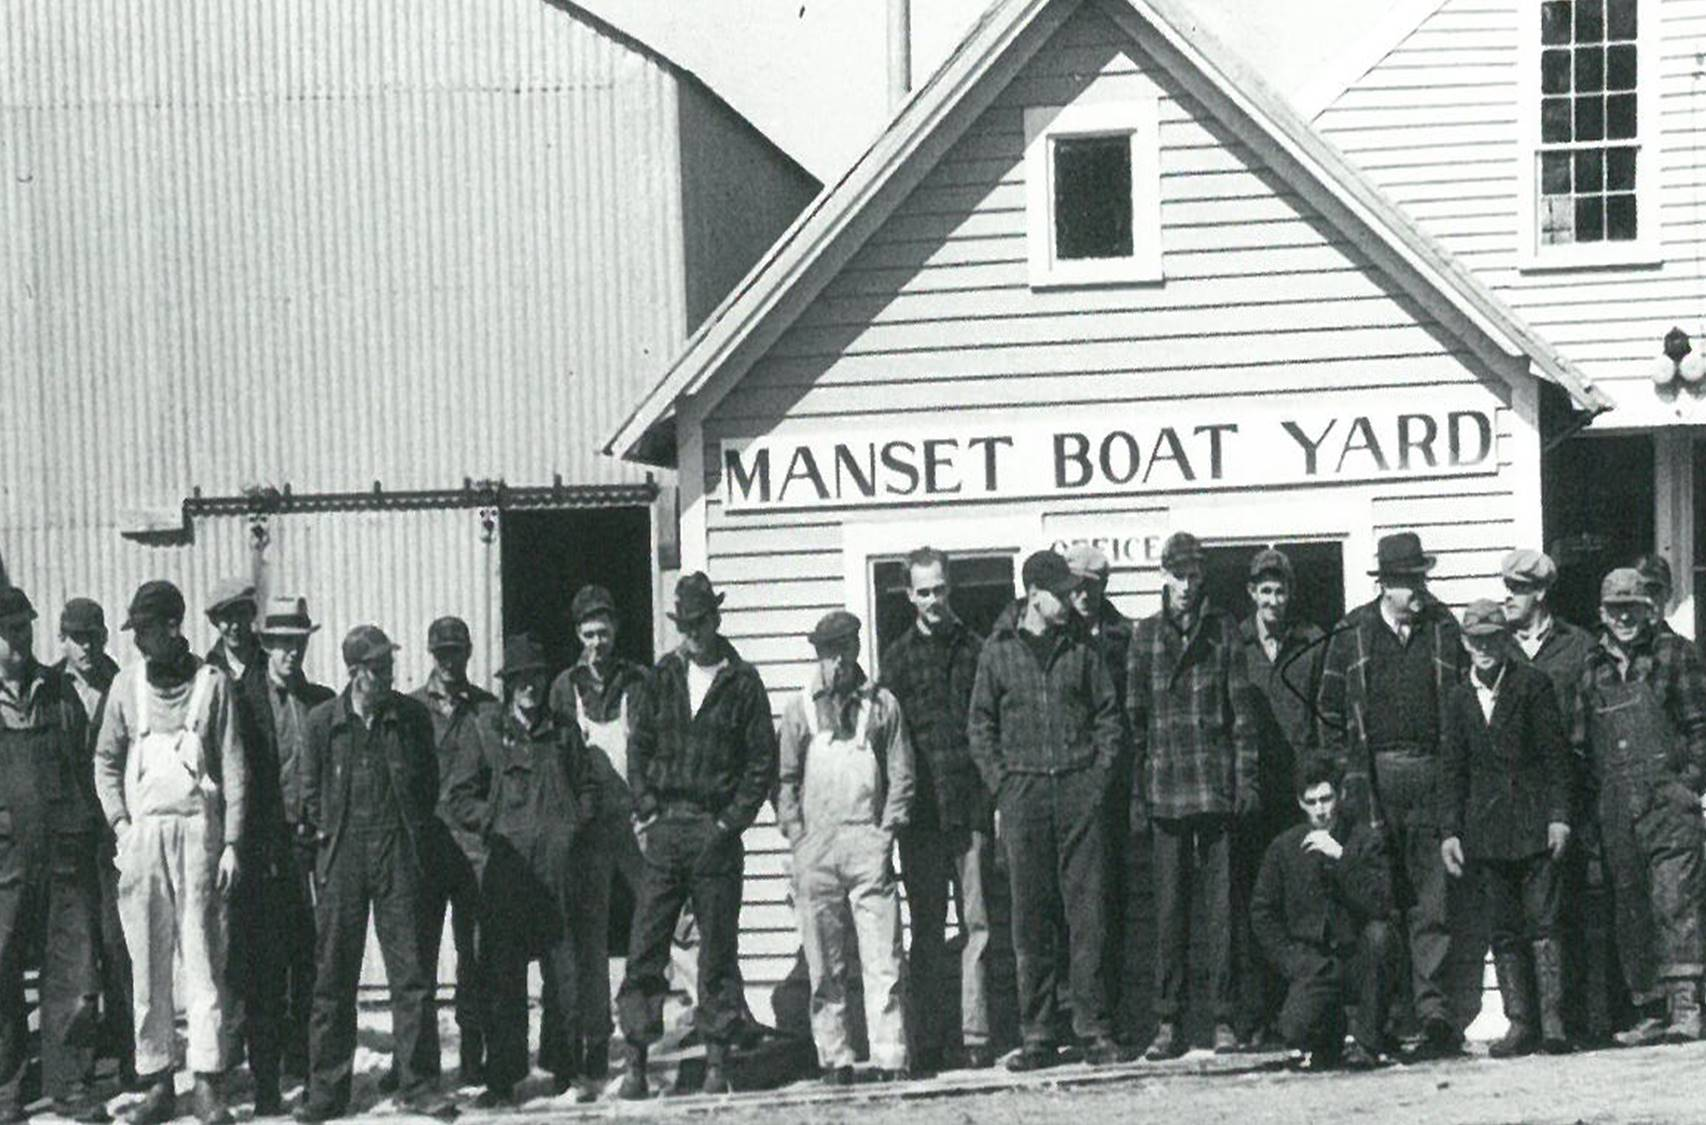 93 Coast Guard picket boats. Employees in 1941.